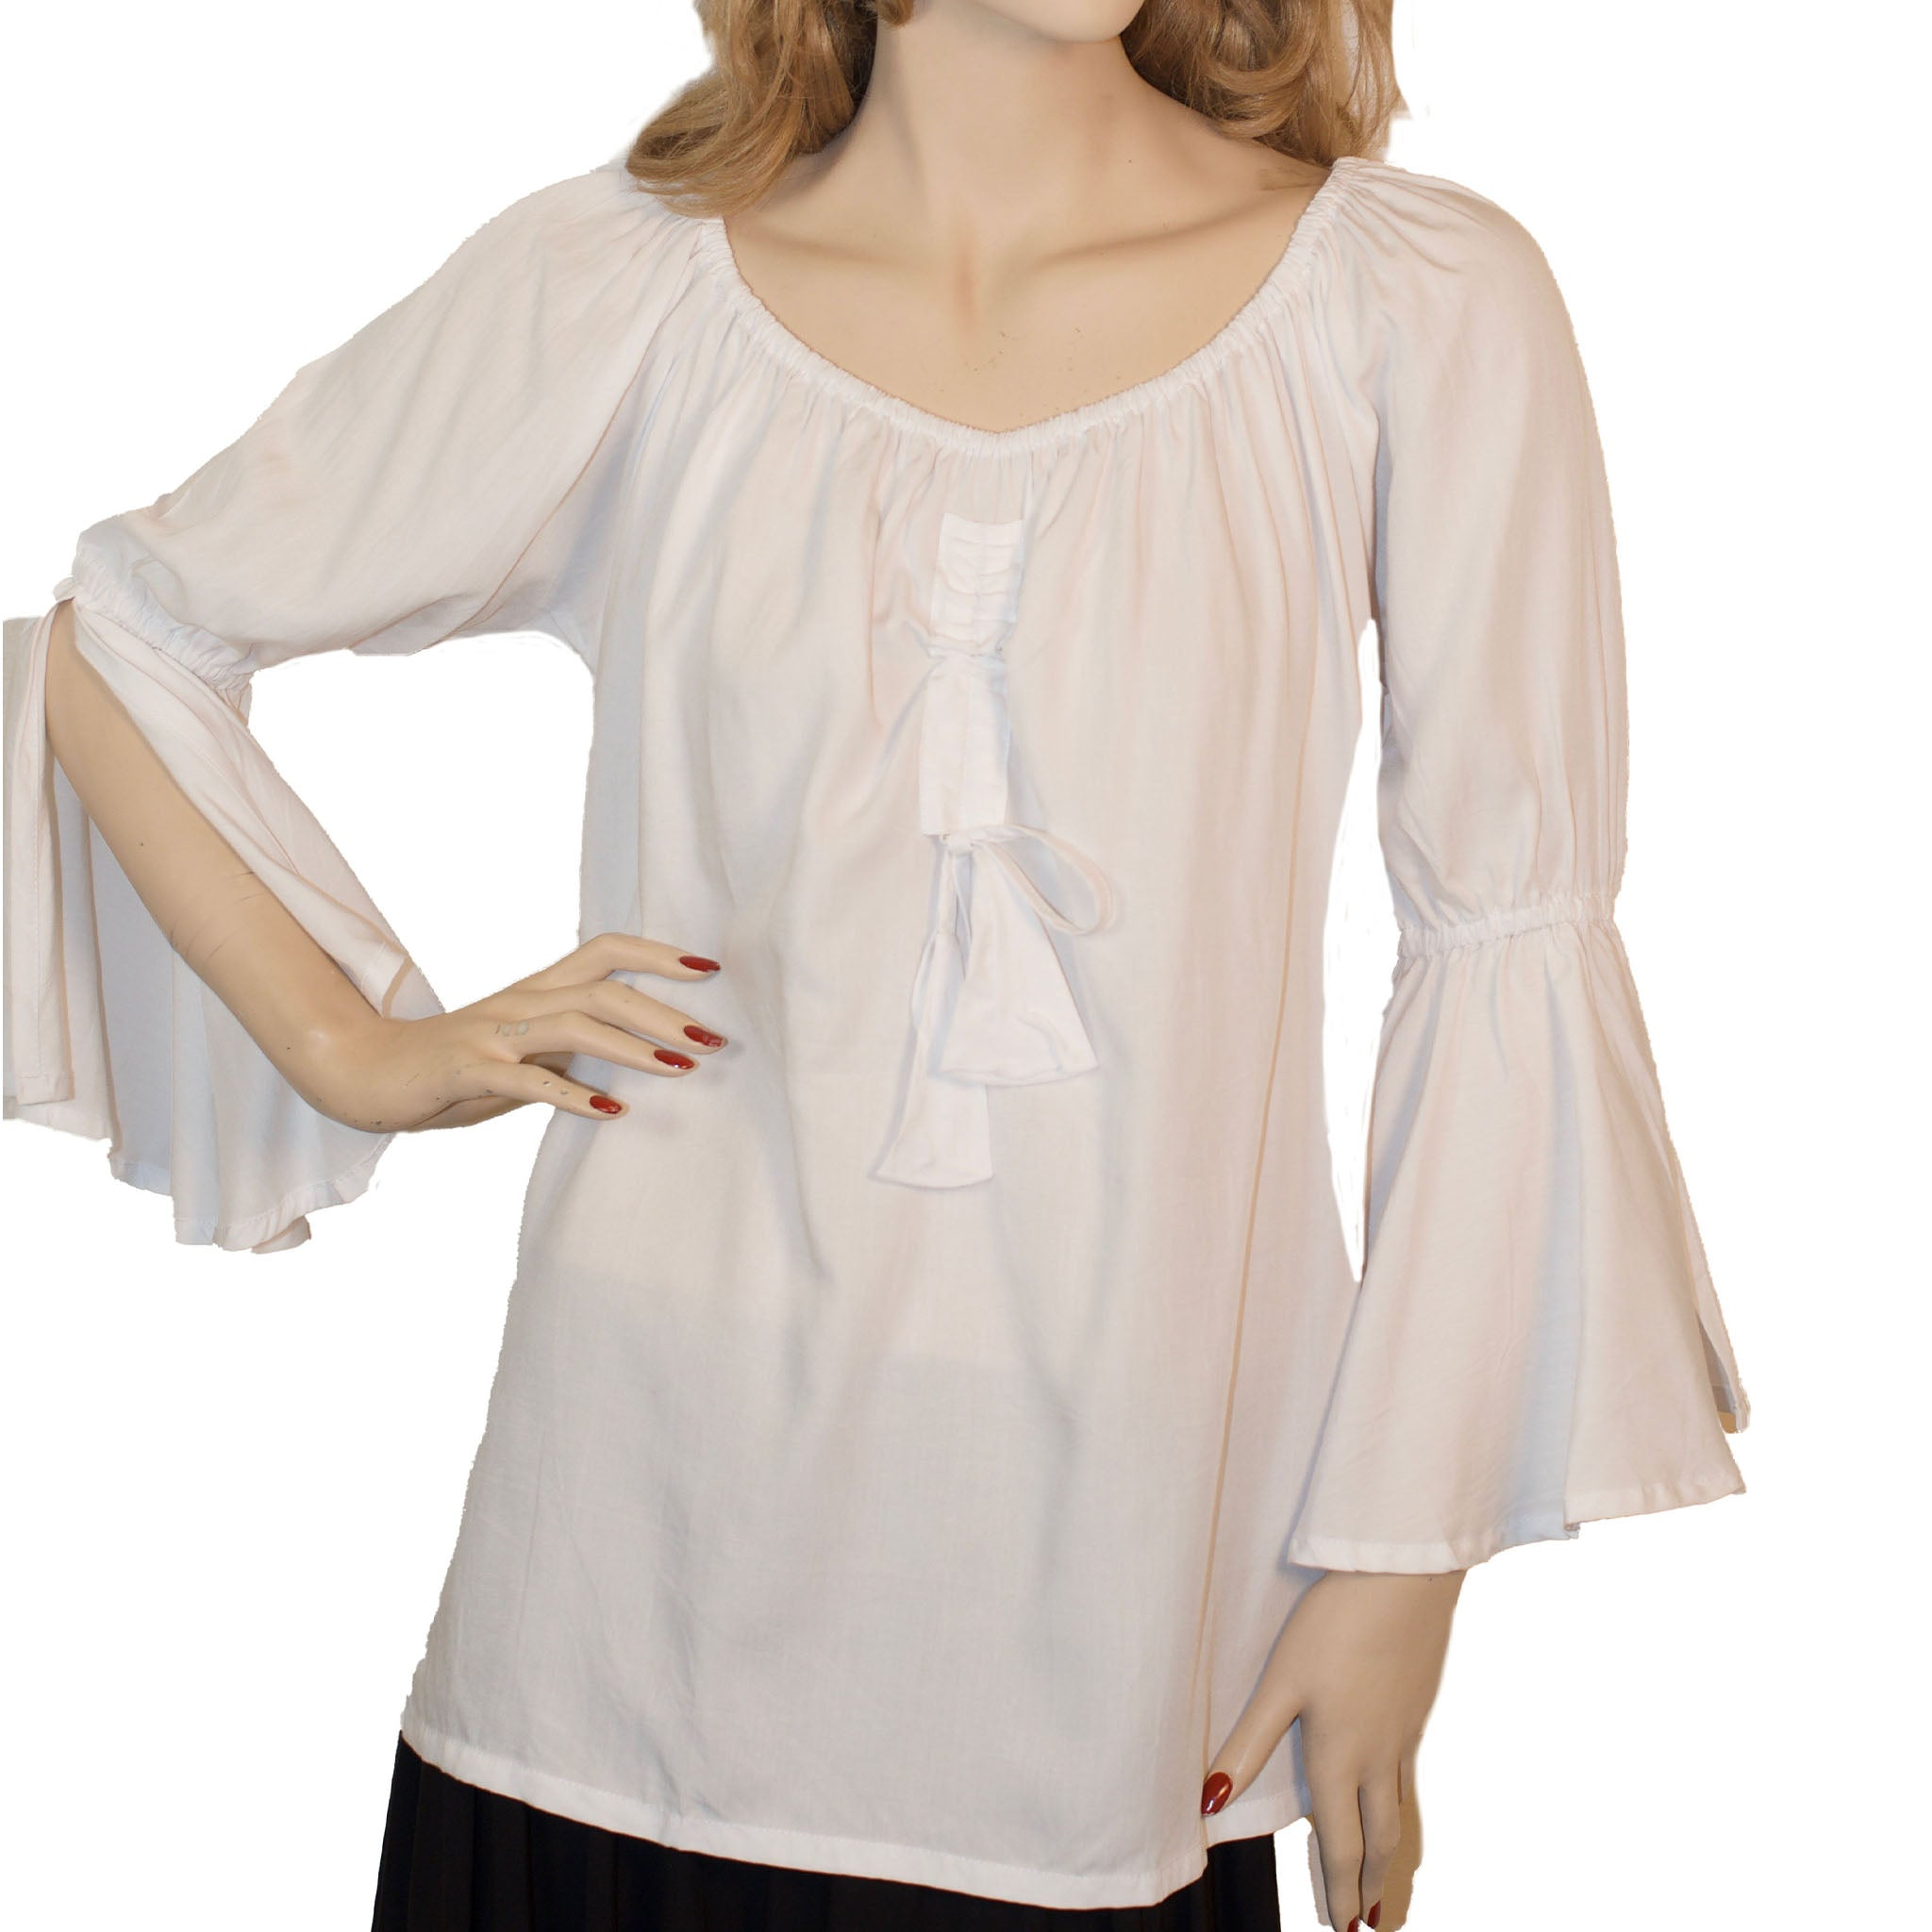 Womans Renaissance Top Pirate Top White